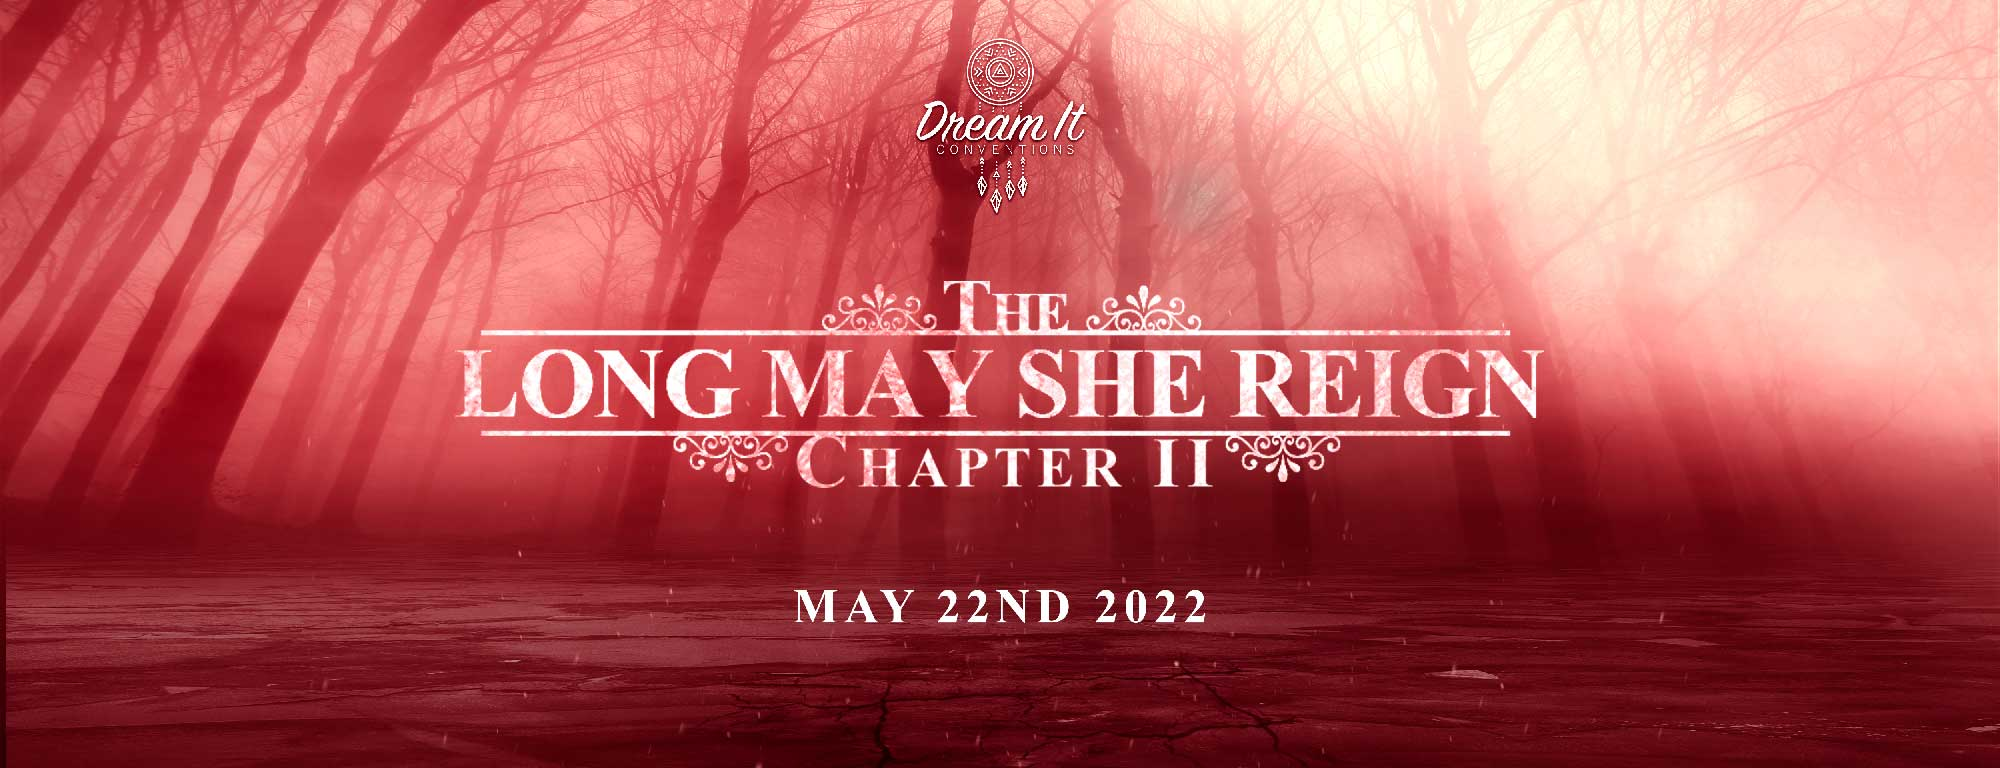 Long May She Reign 2